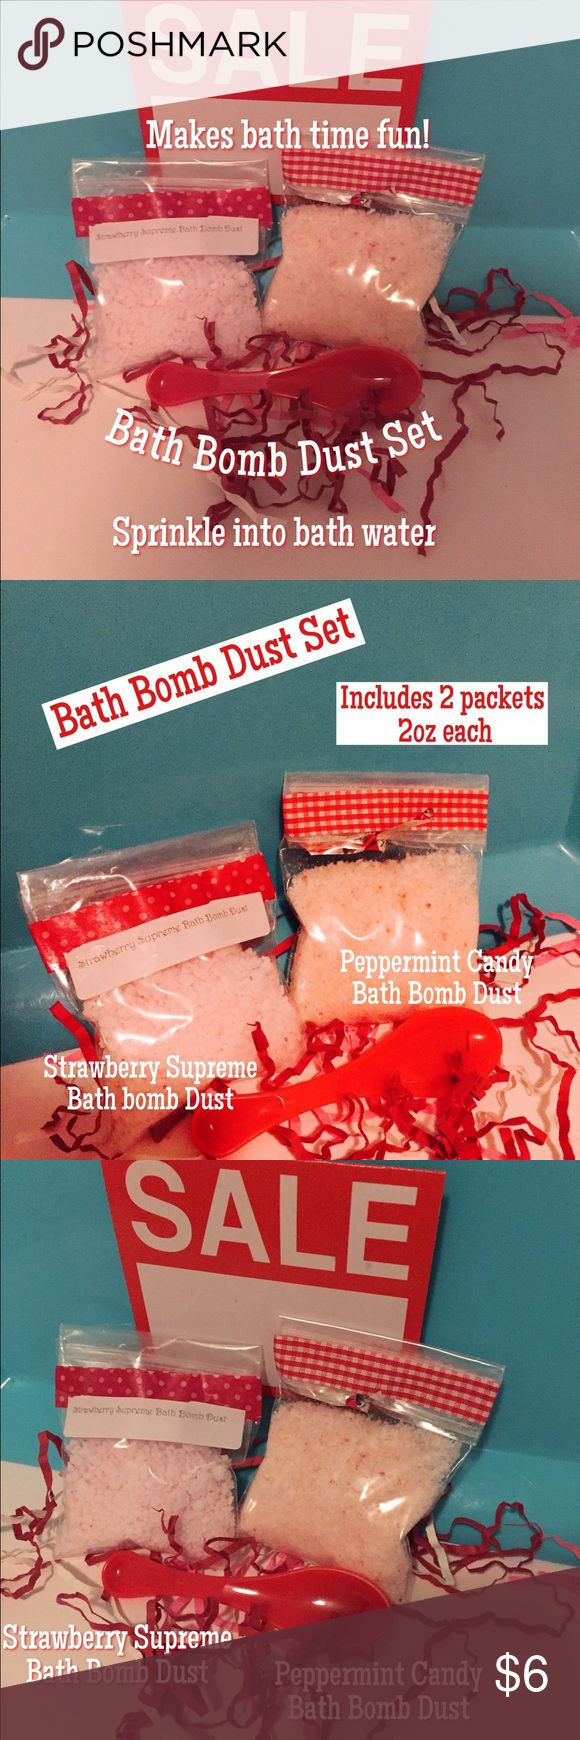 Bath Bomb Dust Set! What fun! bath bomb dust set. Includes 2 packets 2 oz each. 1 strawberry supreme, 1 peppermint candy. Bath bomb dust is made with same ingredients as bath bomb, just in powder form. You sprinkle how much or how little you want in the bath water! Includes scooper. Turns bath water light pink. Sprinkle in bath for soft smooth skin! #bathbombdust#fairydust#bathbombs#skincare#makeup#handmade#pink#lush#bathtime Makeup